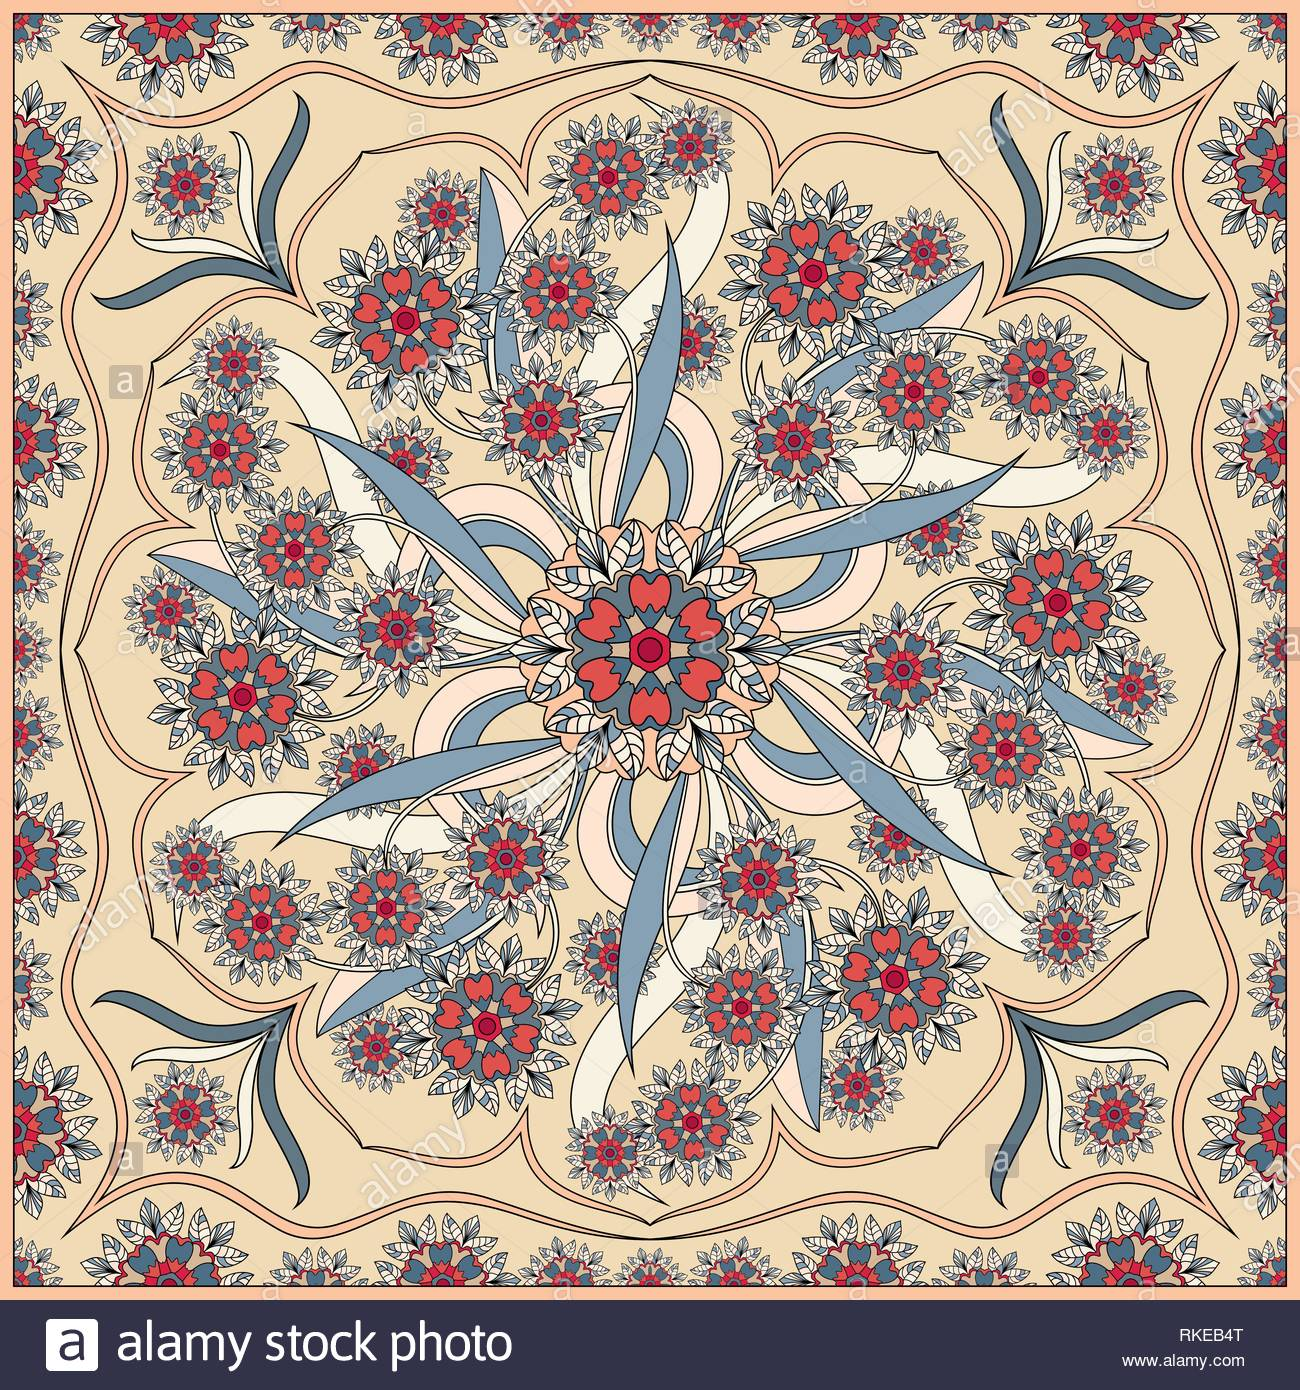 Detailed floral pattern for scarf shawl carpet or embroidery 1300x1390